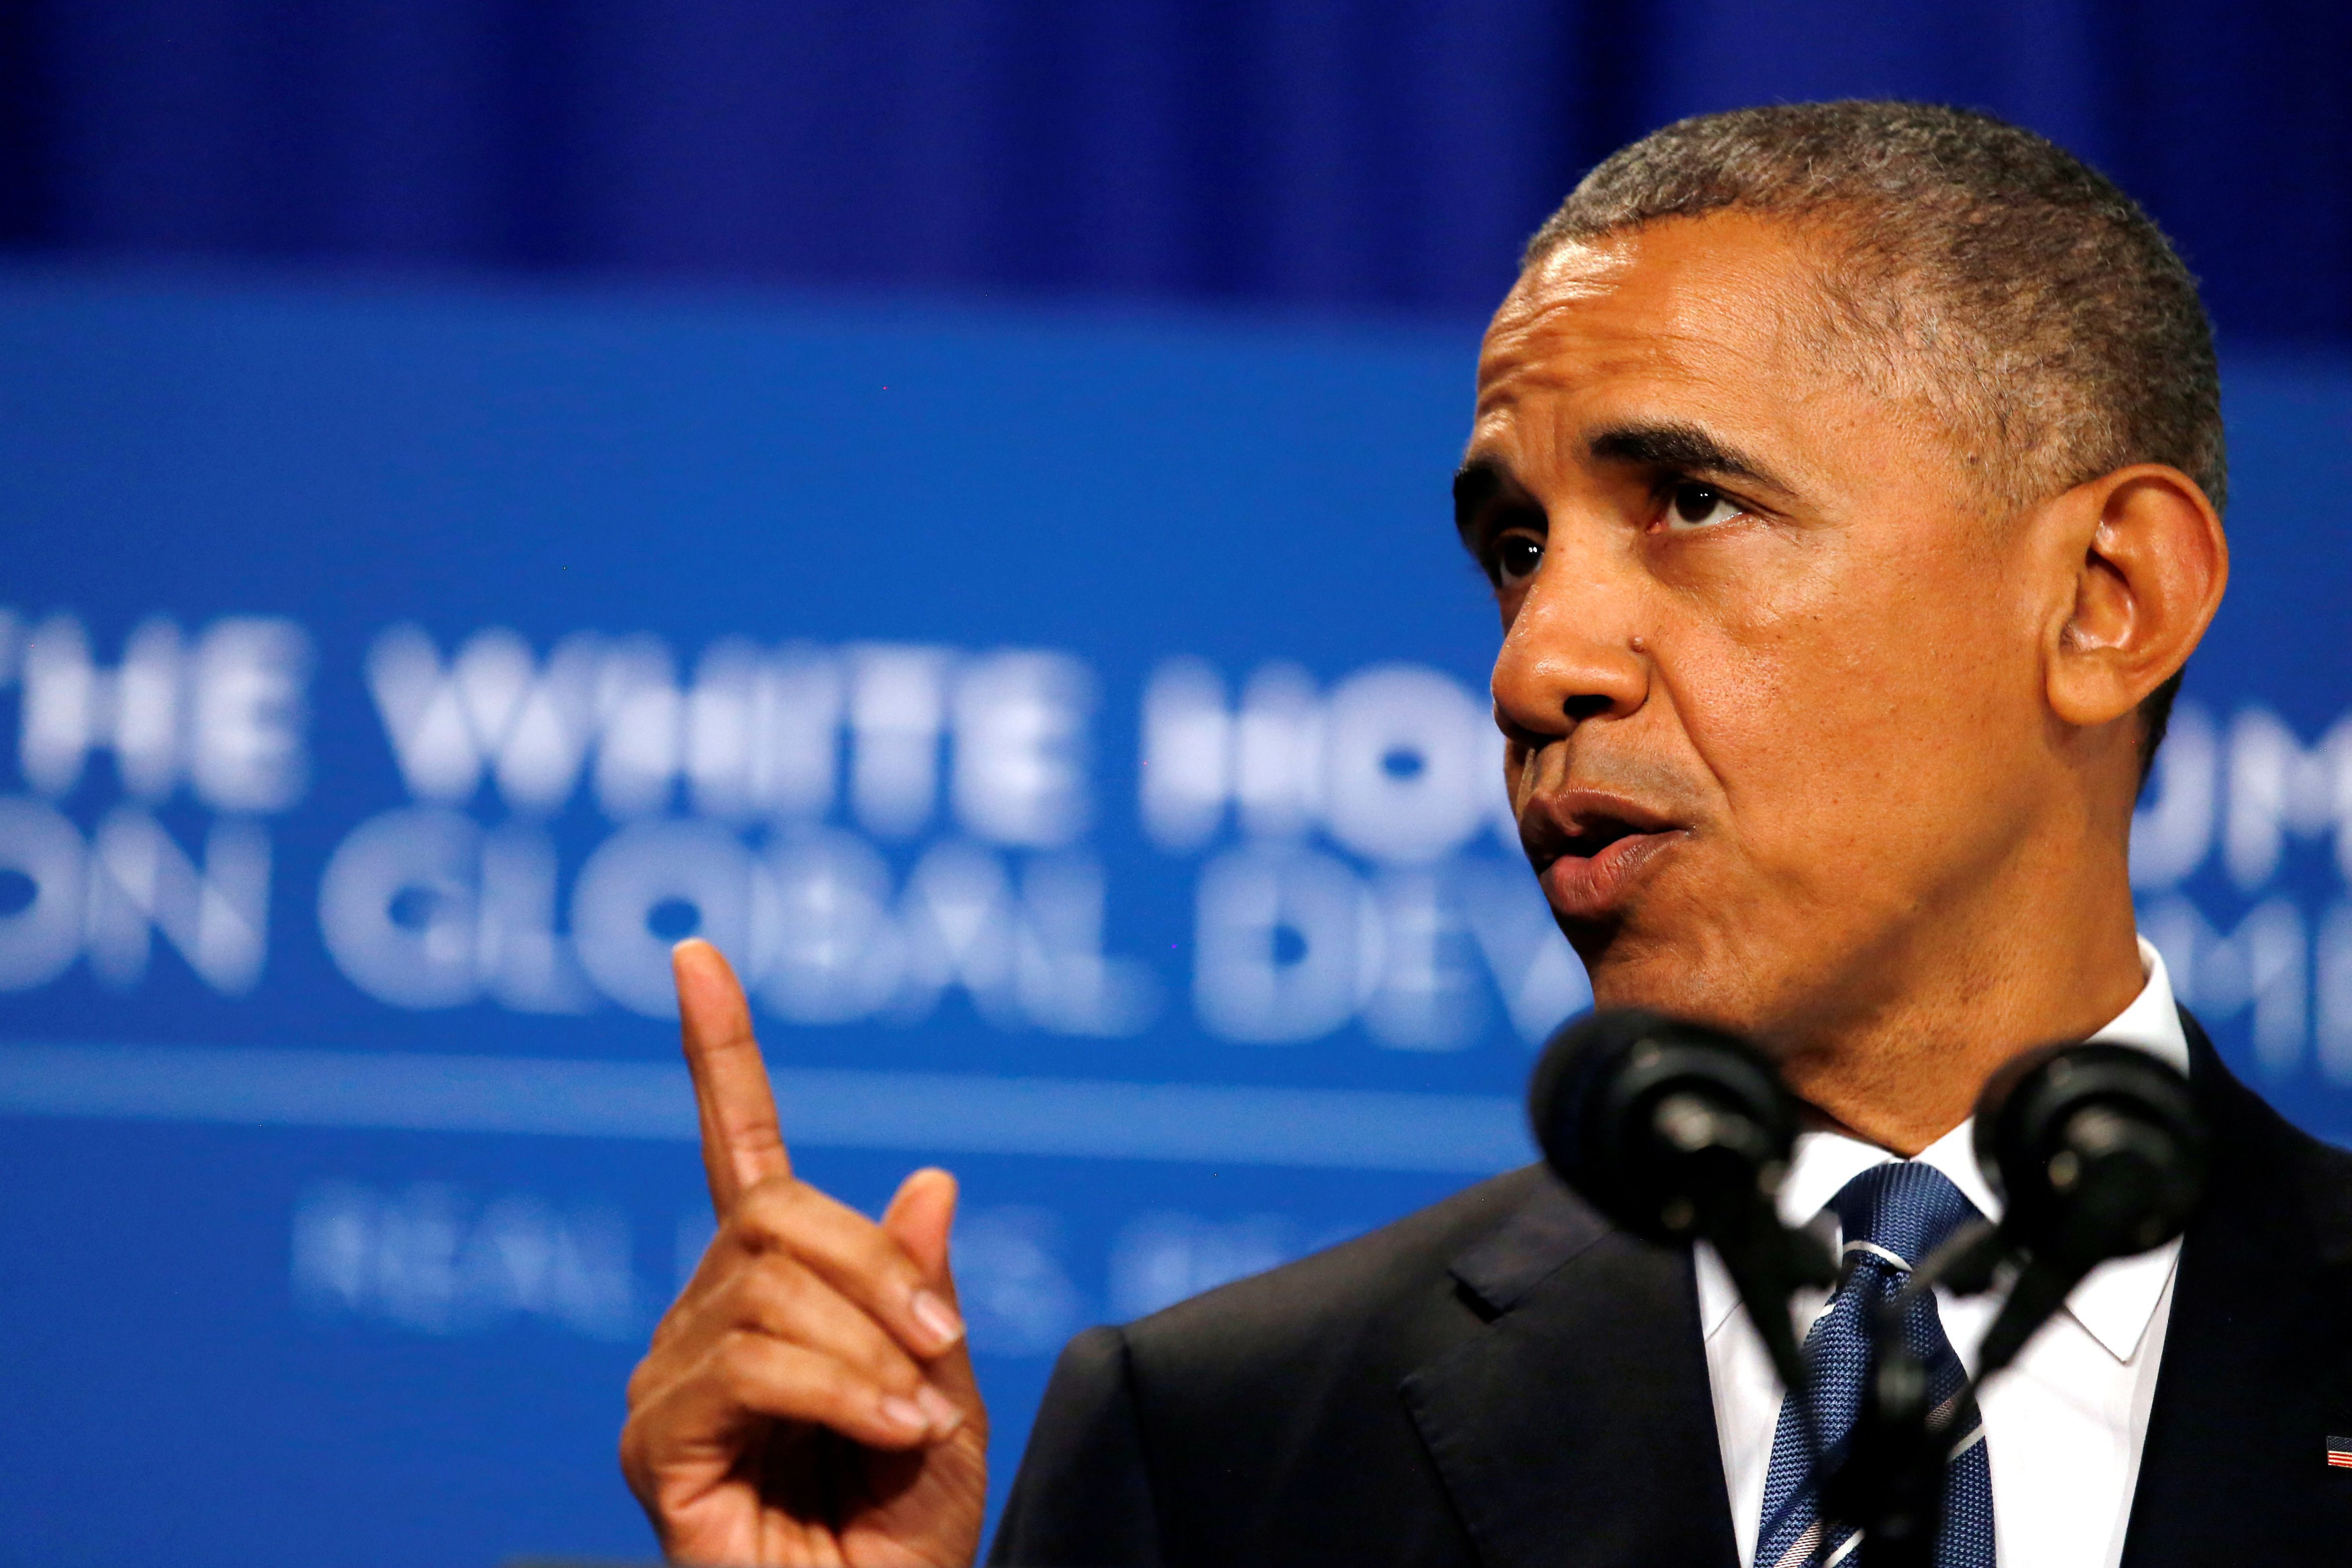 U.S. President Barack Obama delivers remarks during the White House Summit on Global Development at the Ronald Reagan Building in Washington U.S.